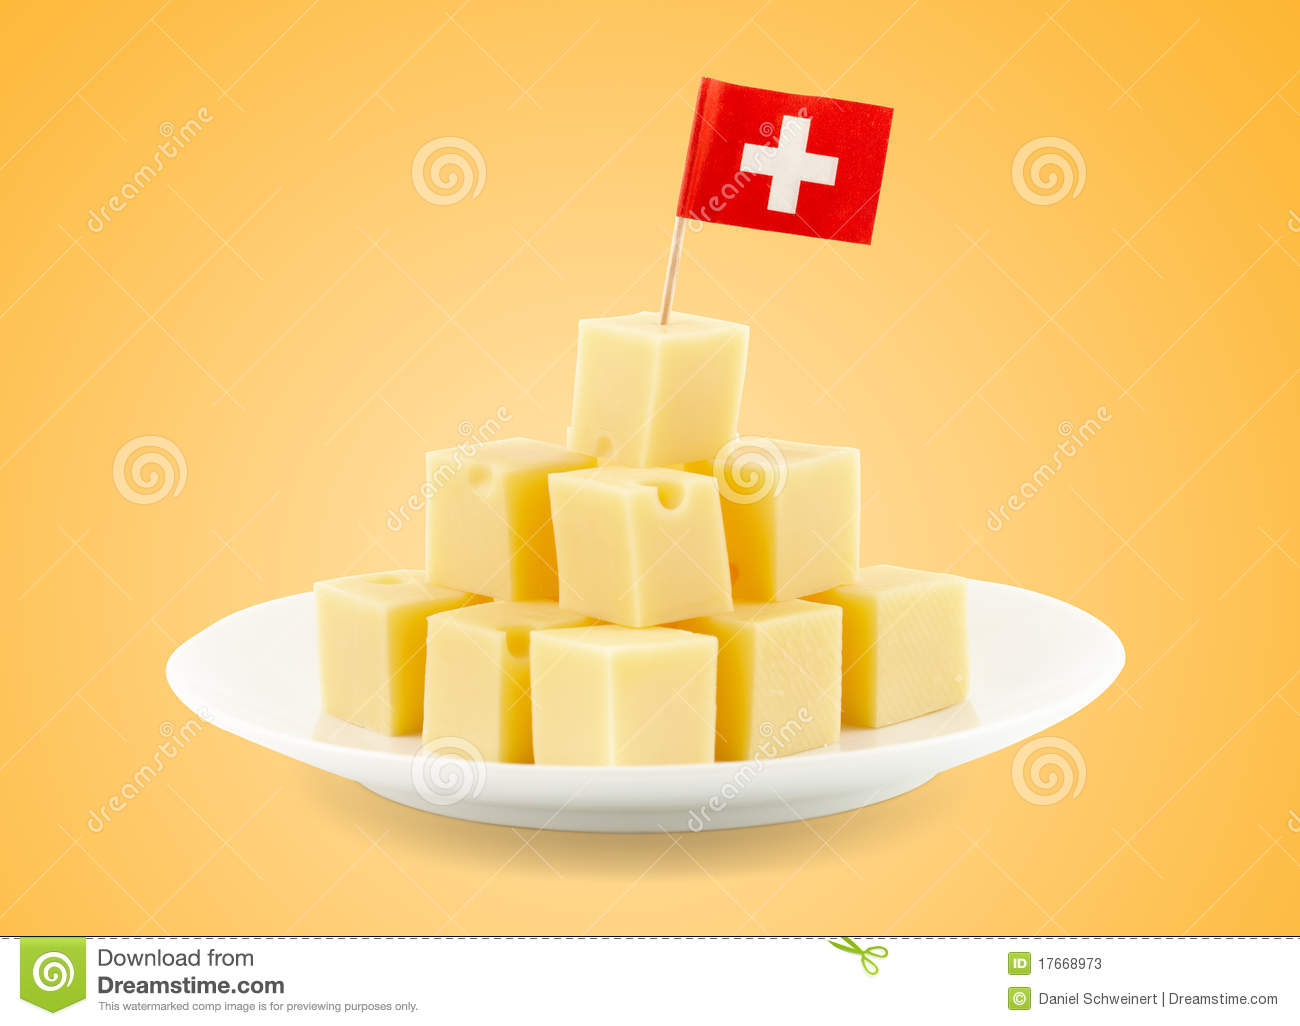 Swiss Cheese Cubes Stock Photos - Image: 17668973